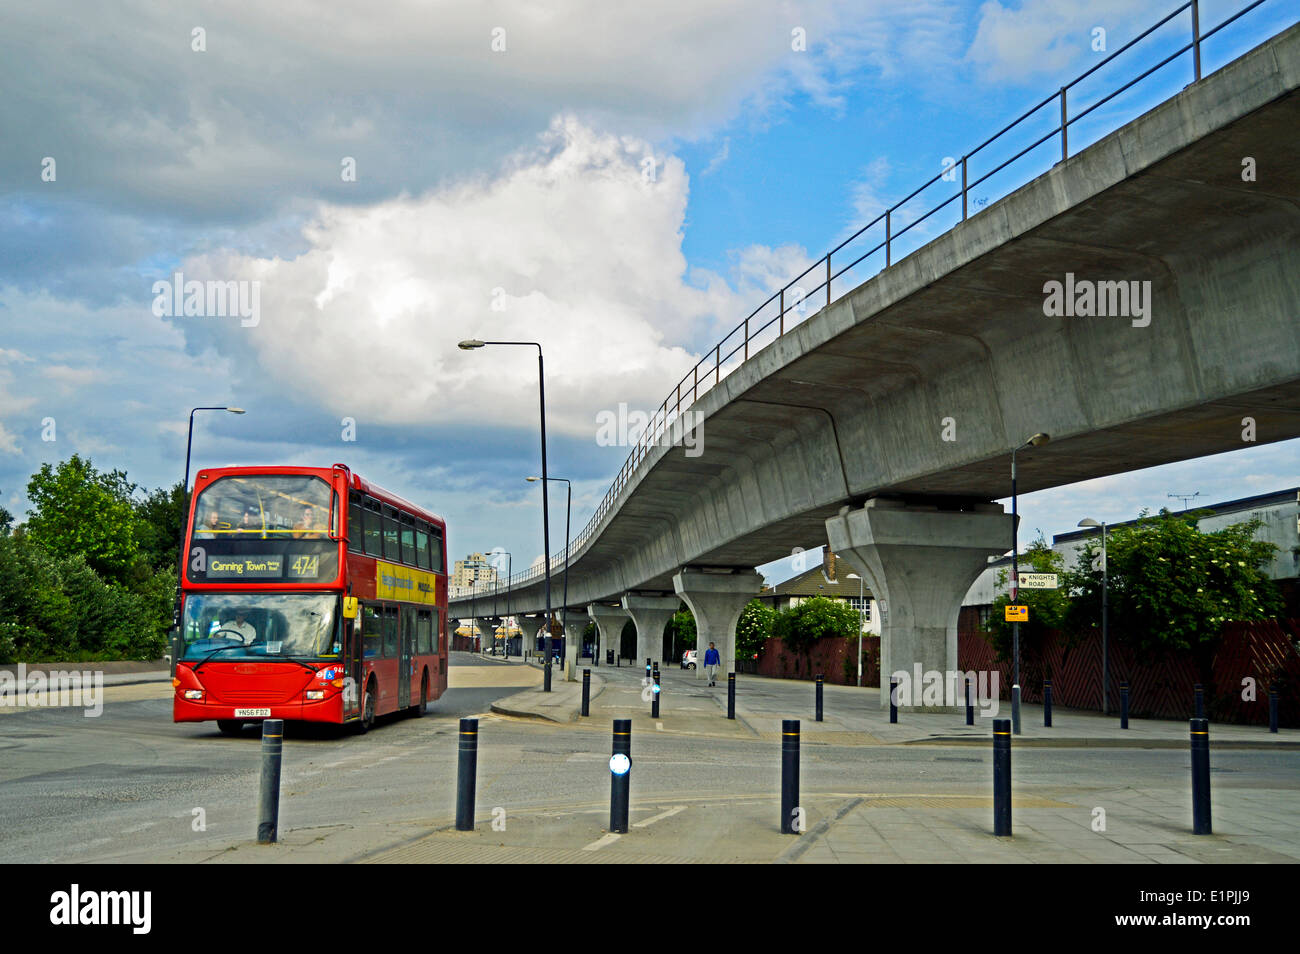 West Silvertown DLR overpass, London Borough of Newham, London, England, United Kingdom - Stock Image